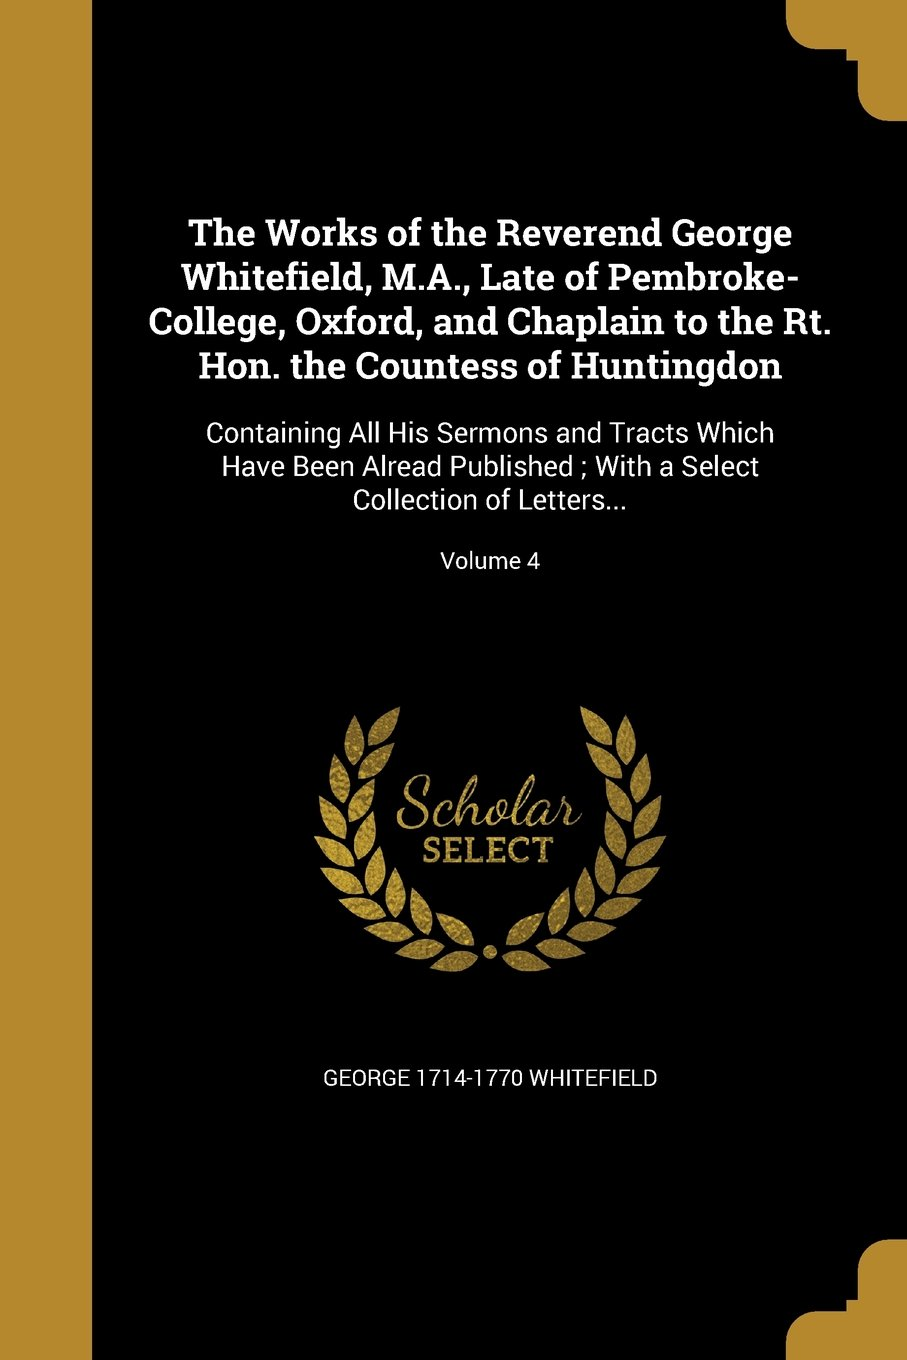 Download The Works of the Reverend George Whitefield, M.A., Late of Pembroke-College, Oxford, and Chaplain to the Rt. Hon. the Countess of Huntingdon: ... a Select Collection of Letters...; Volume 4 pdf epub